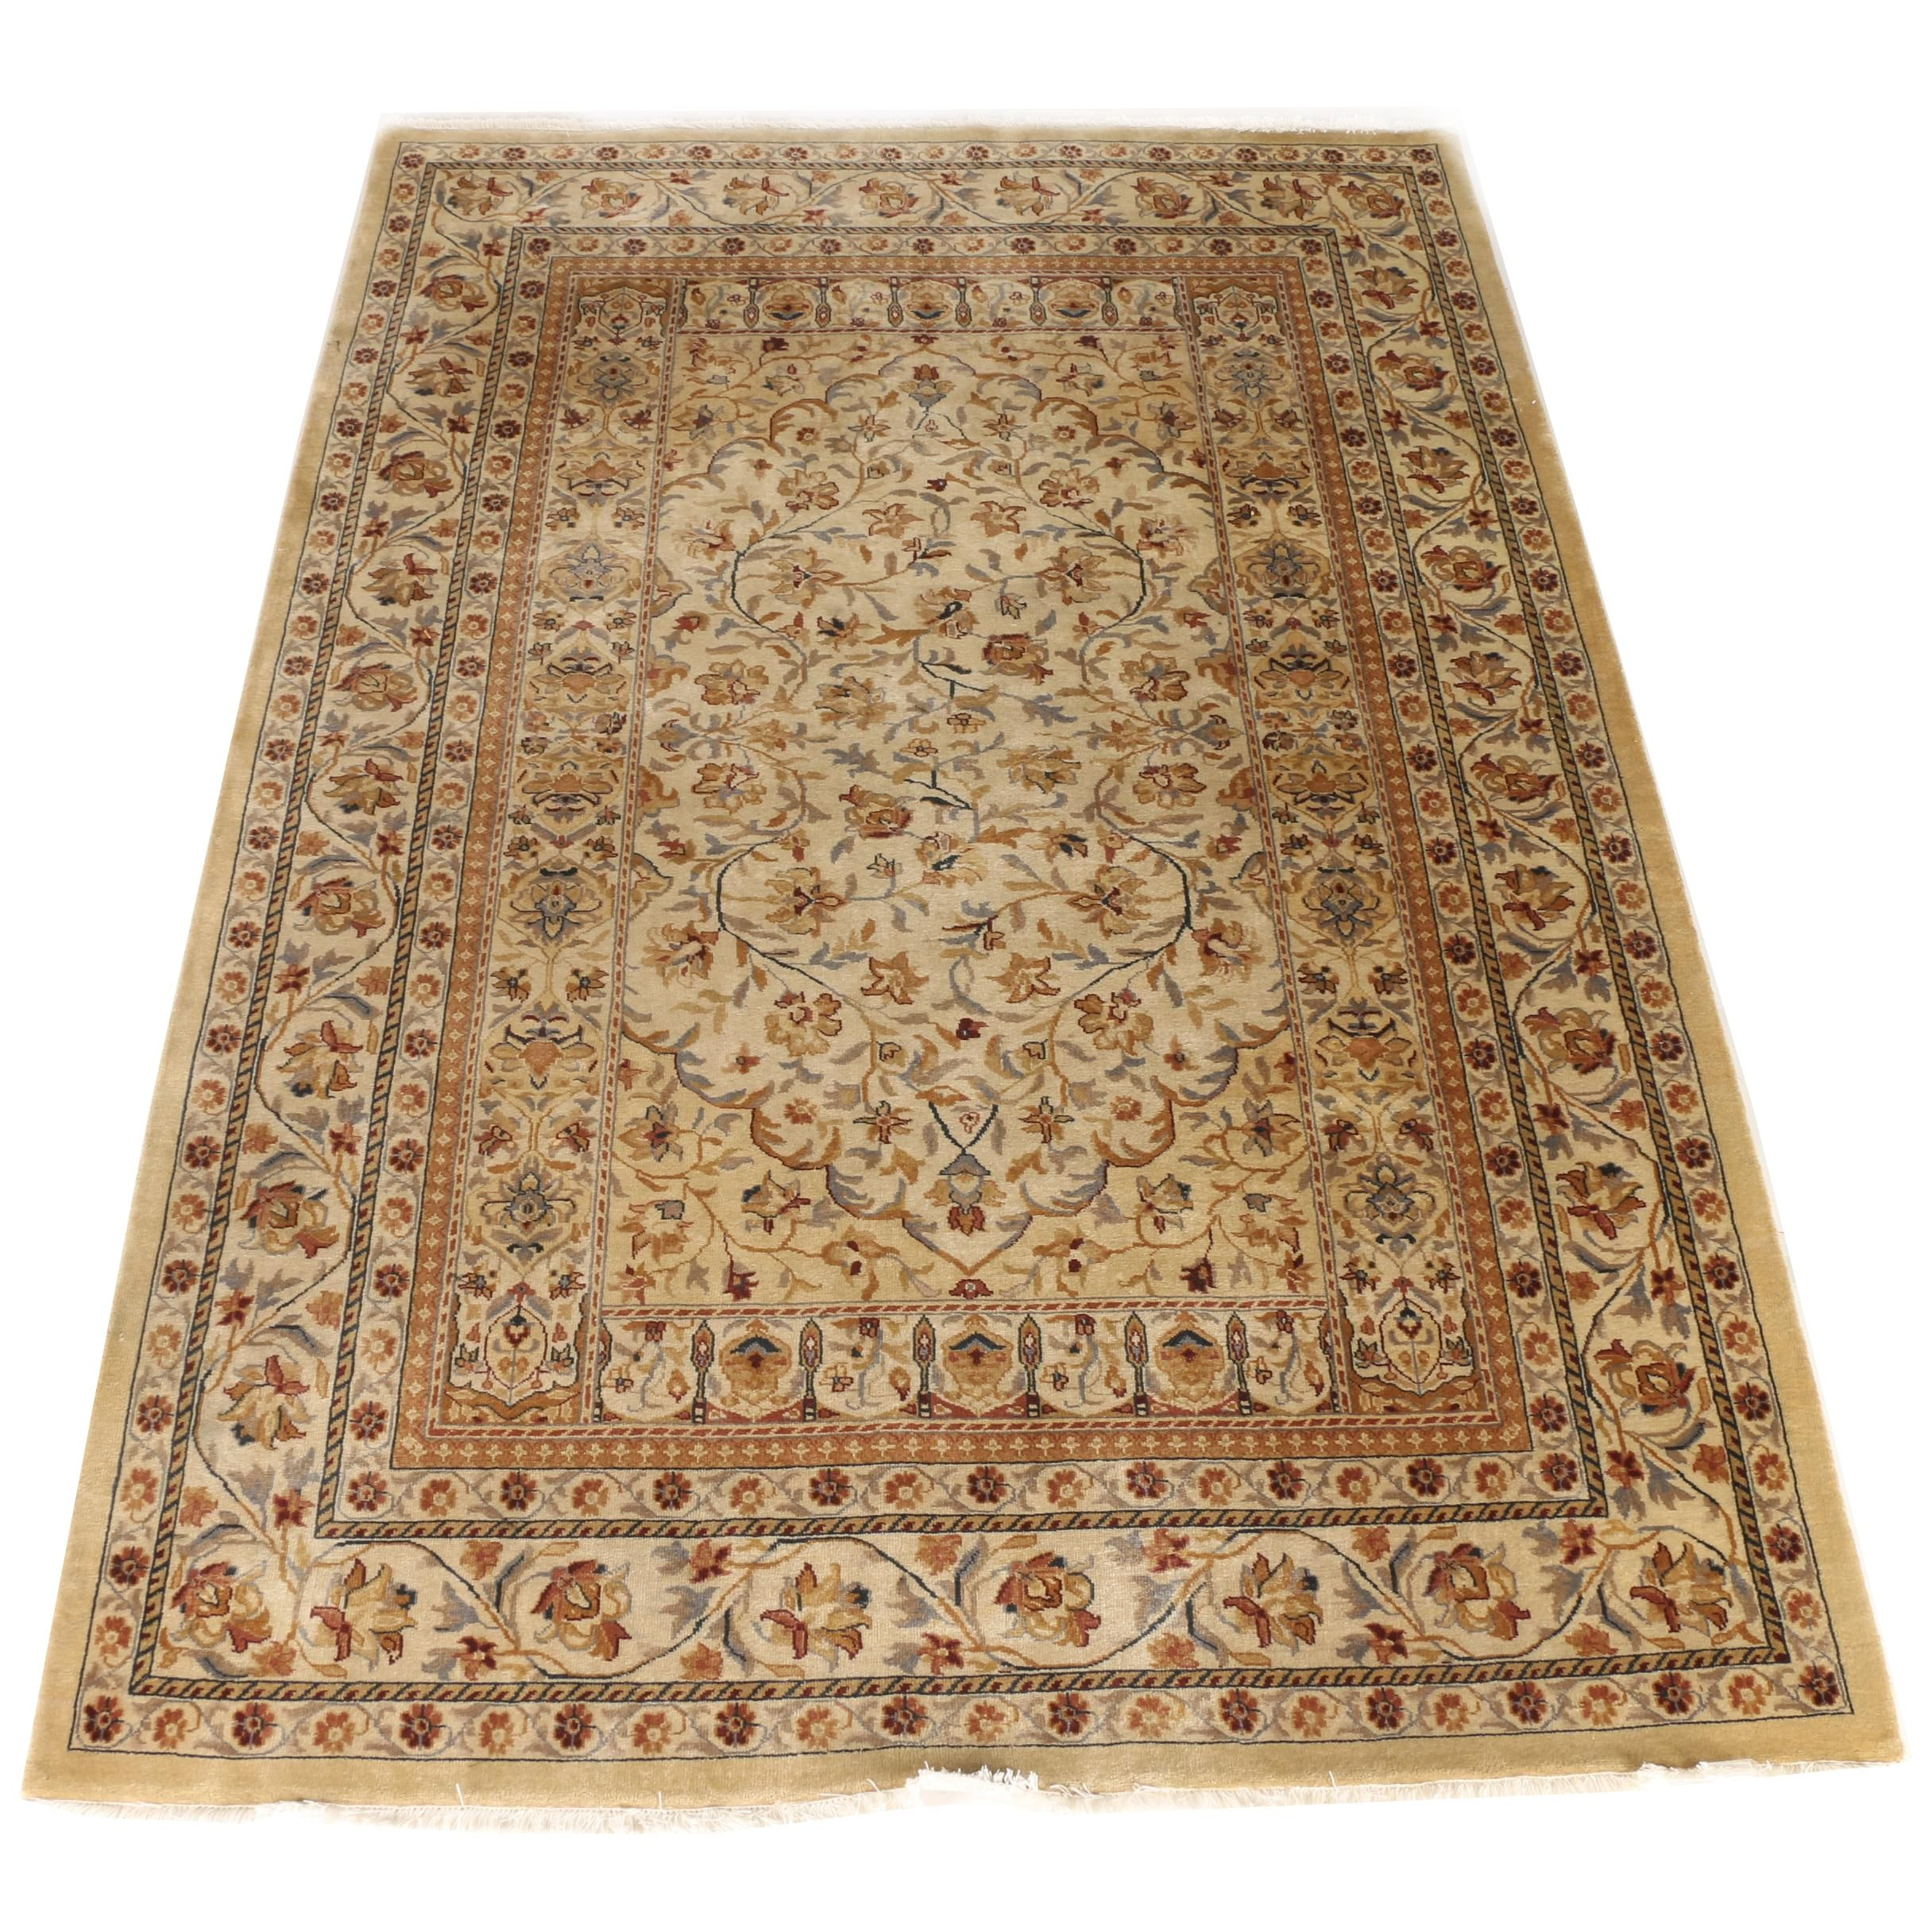 """Hand-Knotted Ethan Allen """"Romantic Taj"""" Persian Style Area Rug"""